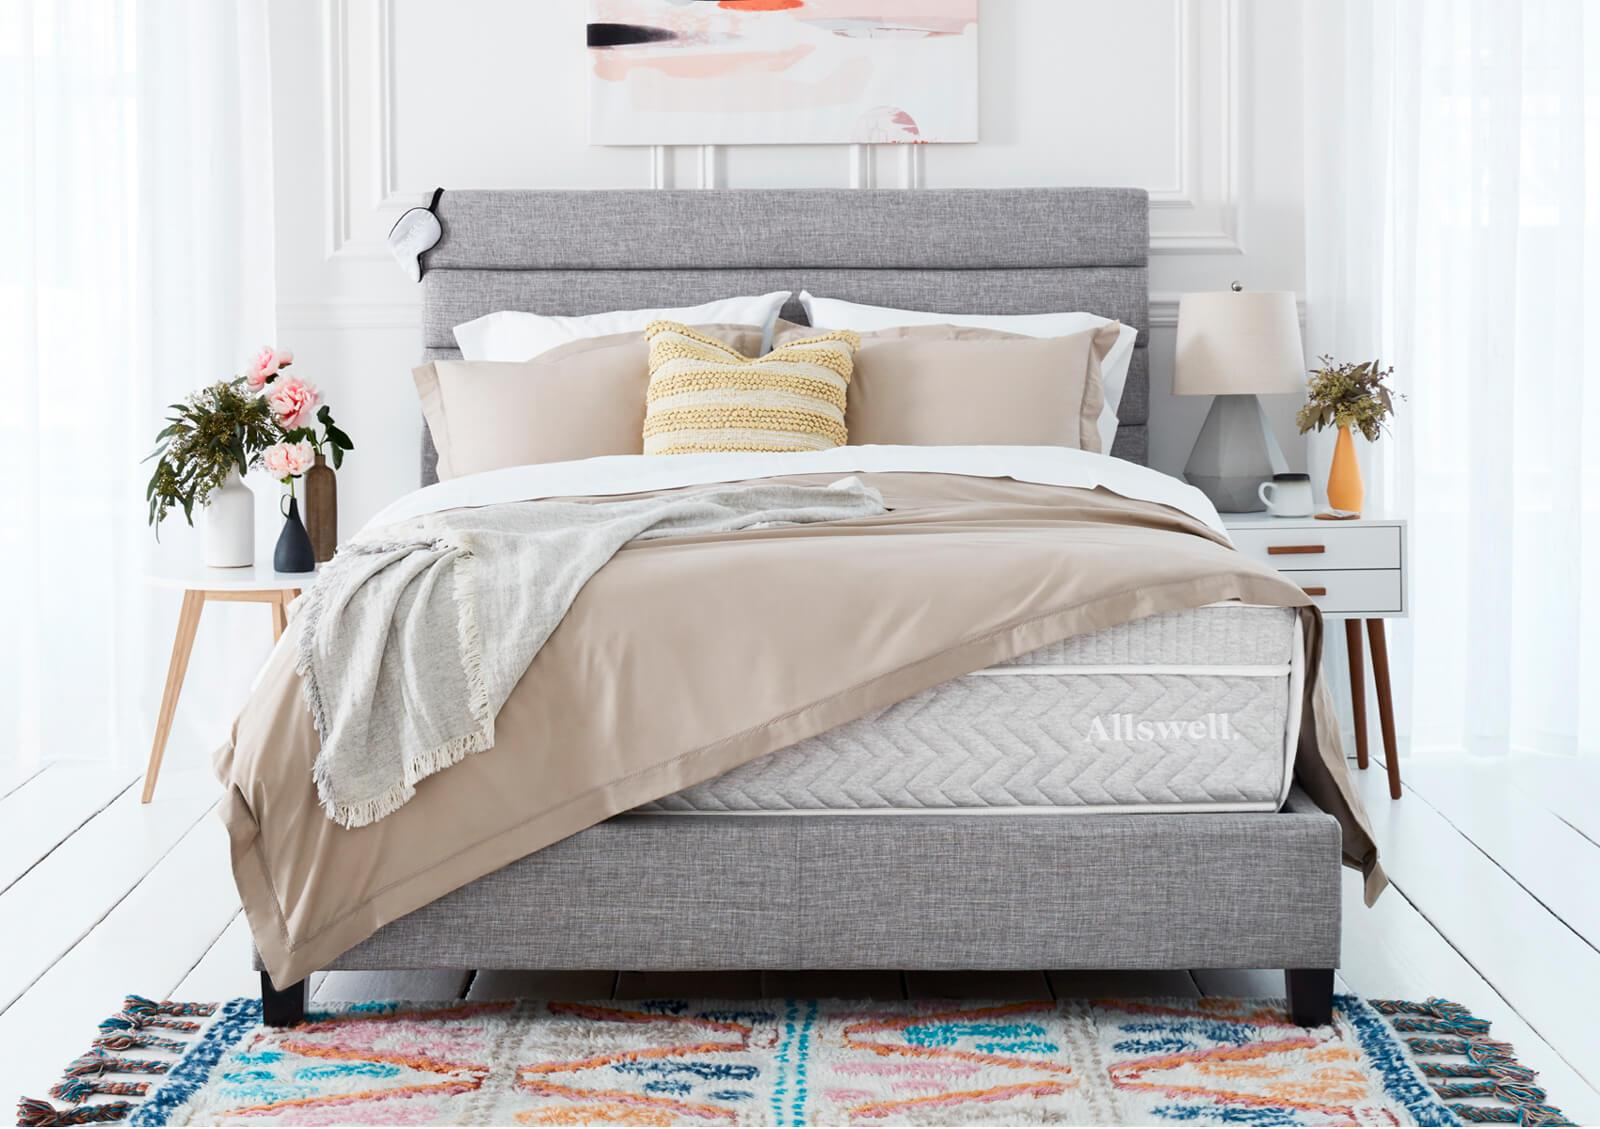 Allswell Supreme Mattress Giveaway Giveaway Image